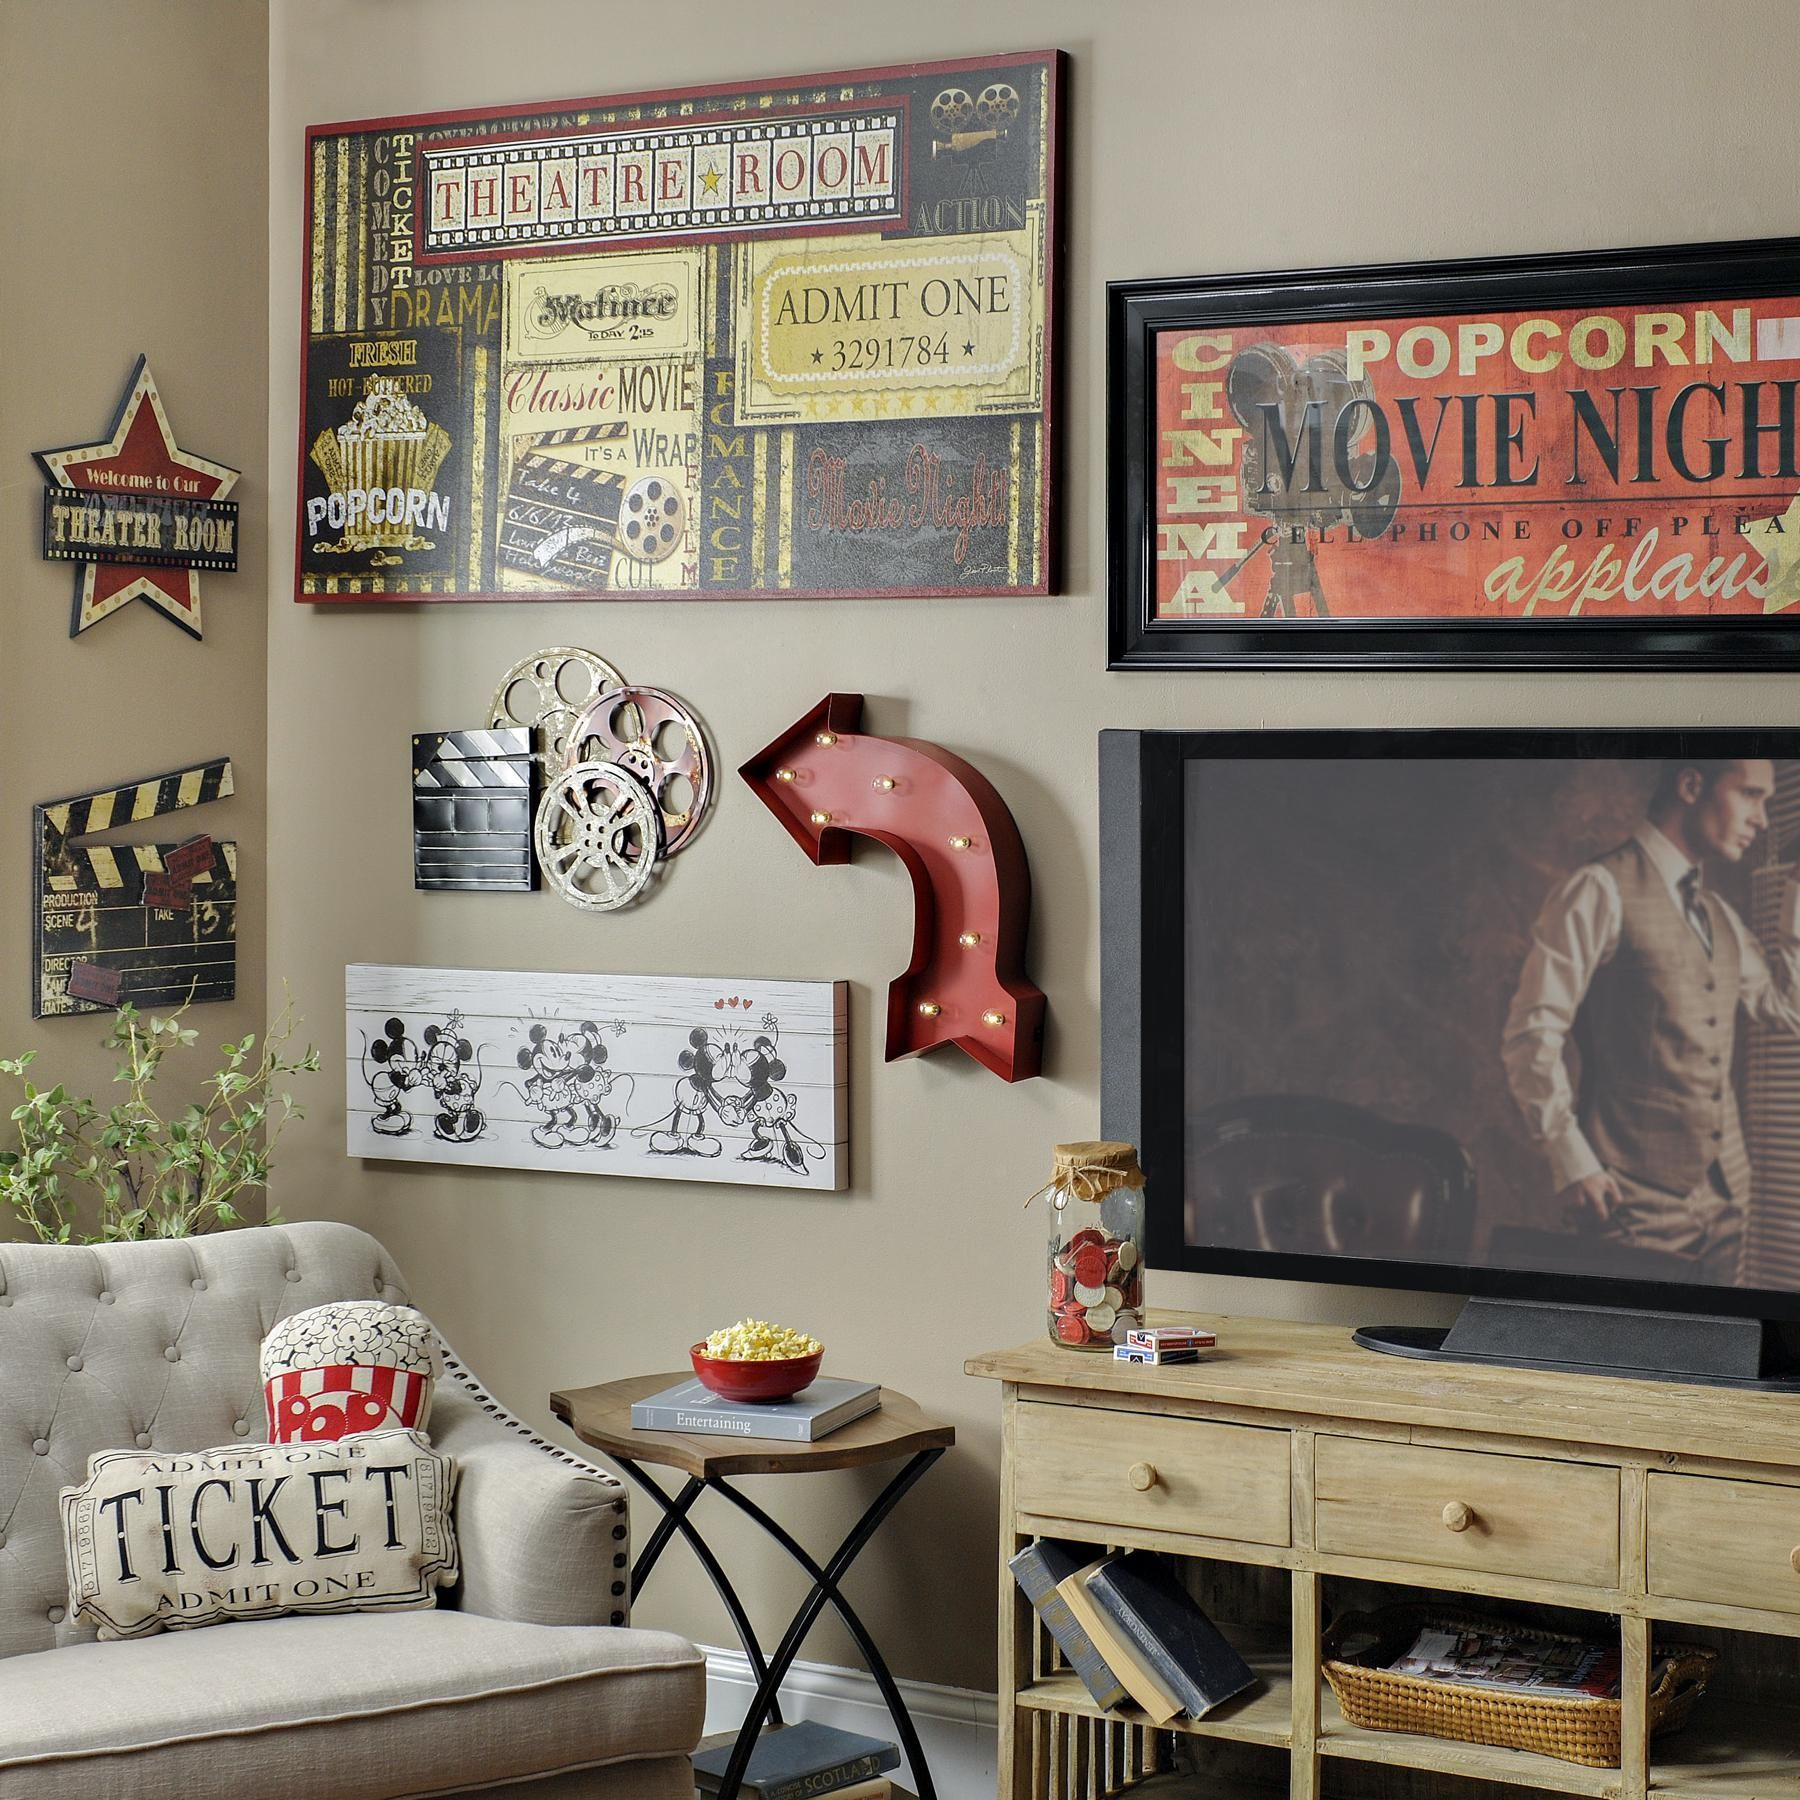 27 Cool Basement Home Theater Ready To Entertain: Film Lovers, We Have The Movie Decor You've Been Searching